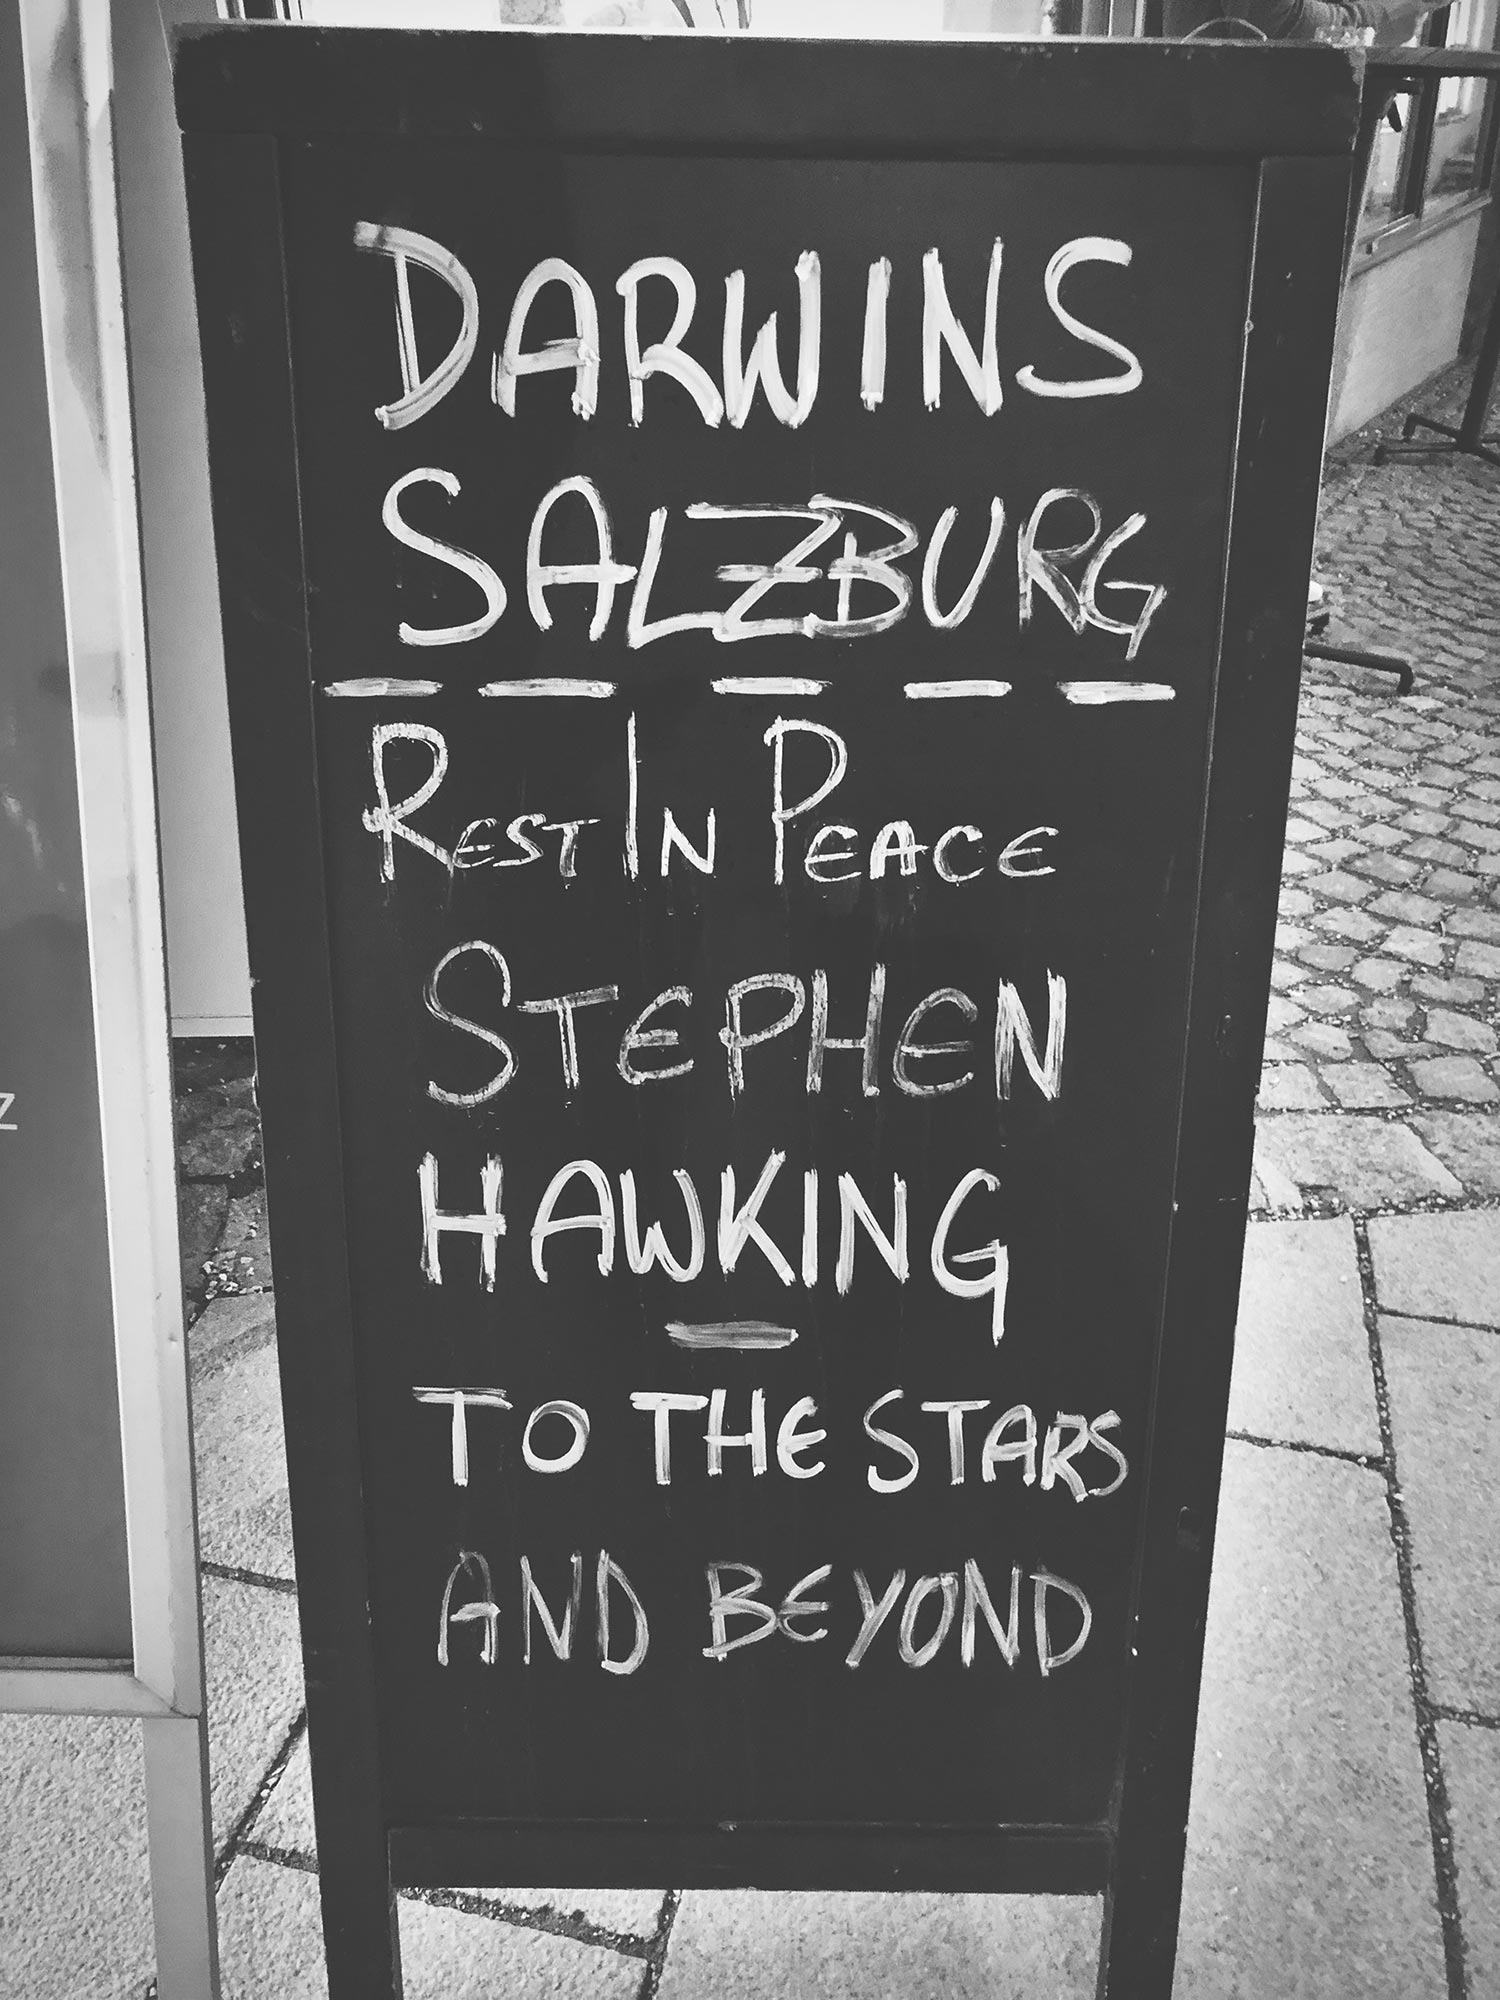 Darwins Salzburg: Rest in peace Stephen Hawking. To the stars and beyond.